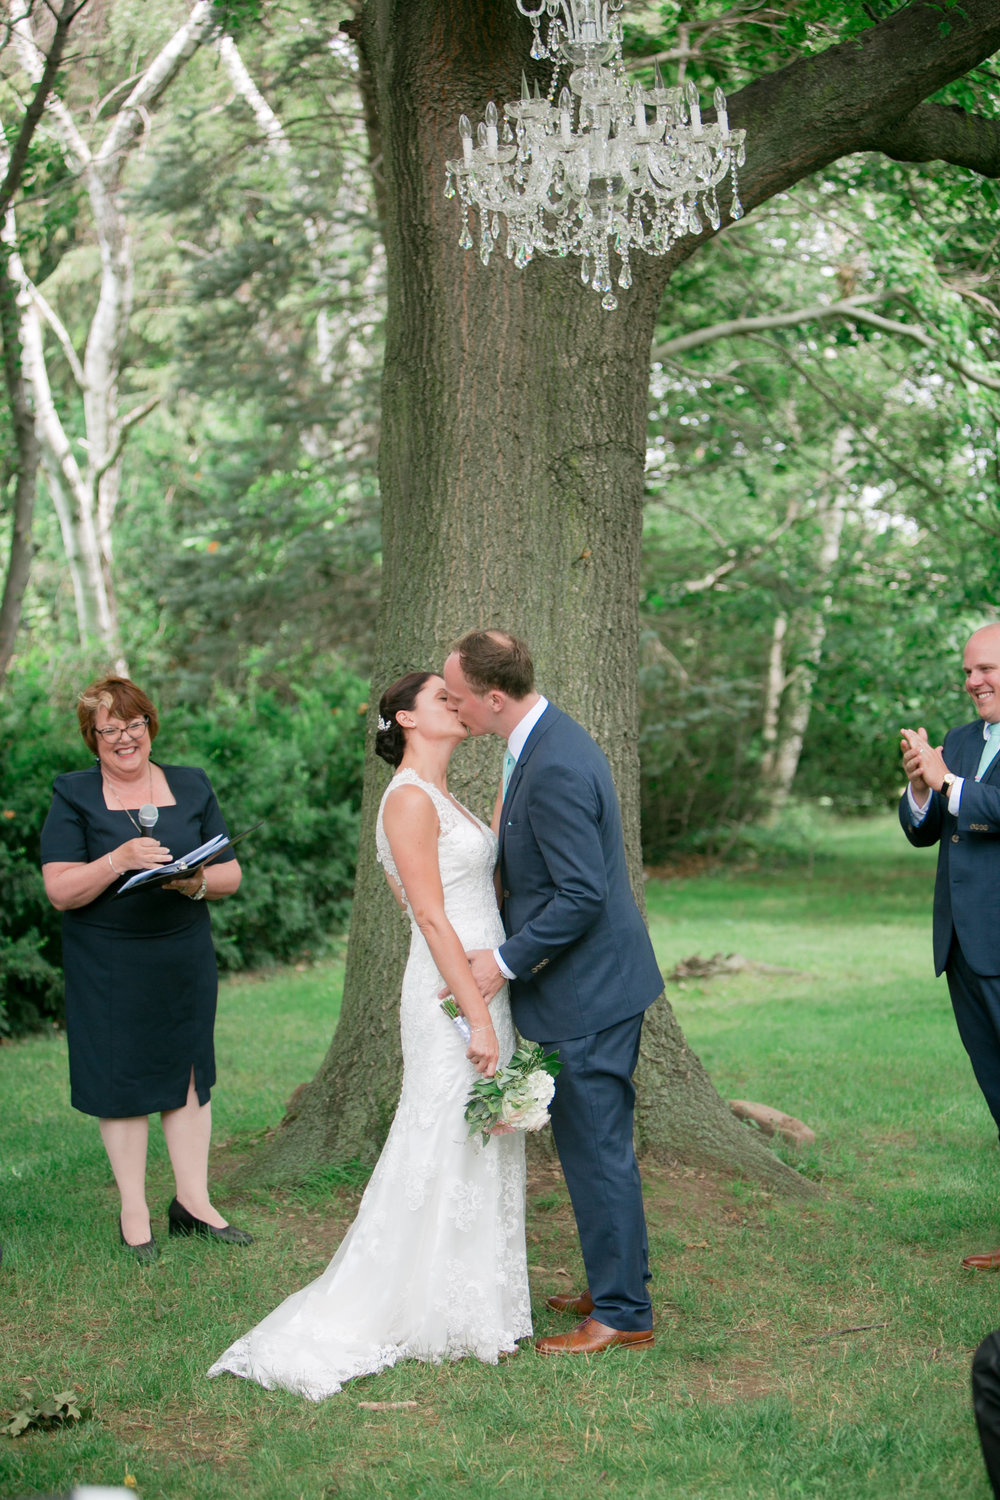 Sarah + Jason - Daniel Ricci Weddings High Res. Finals-318.jpg